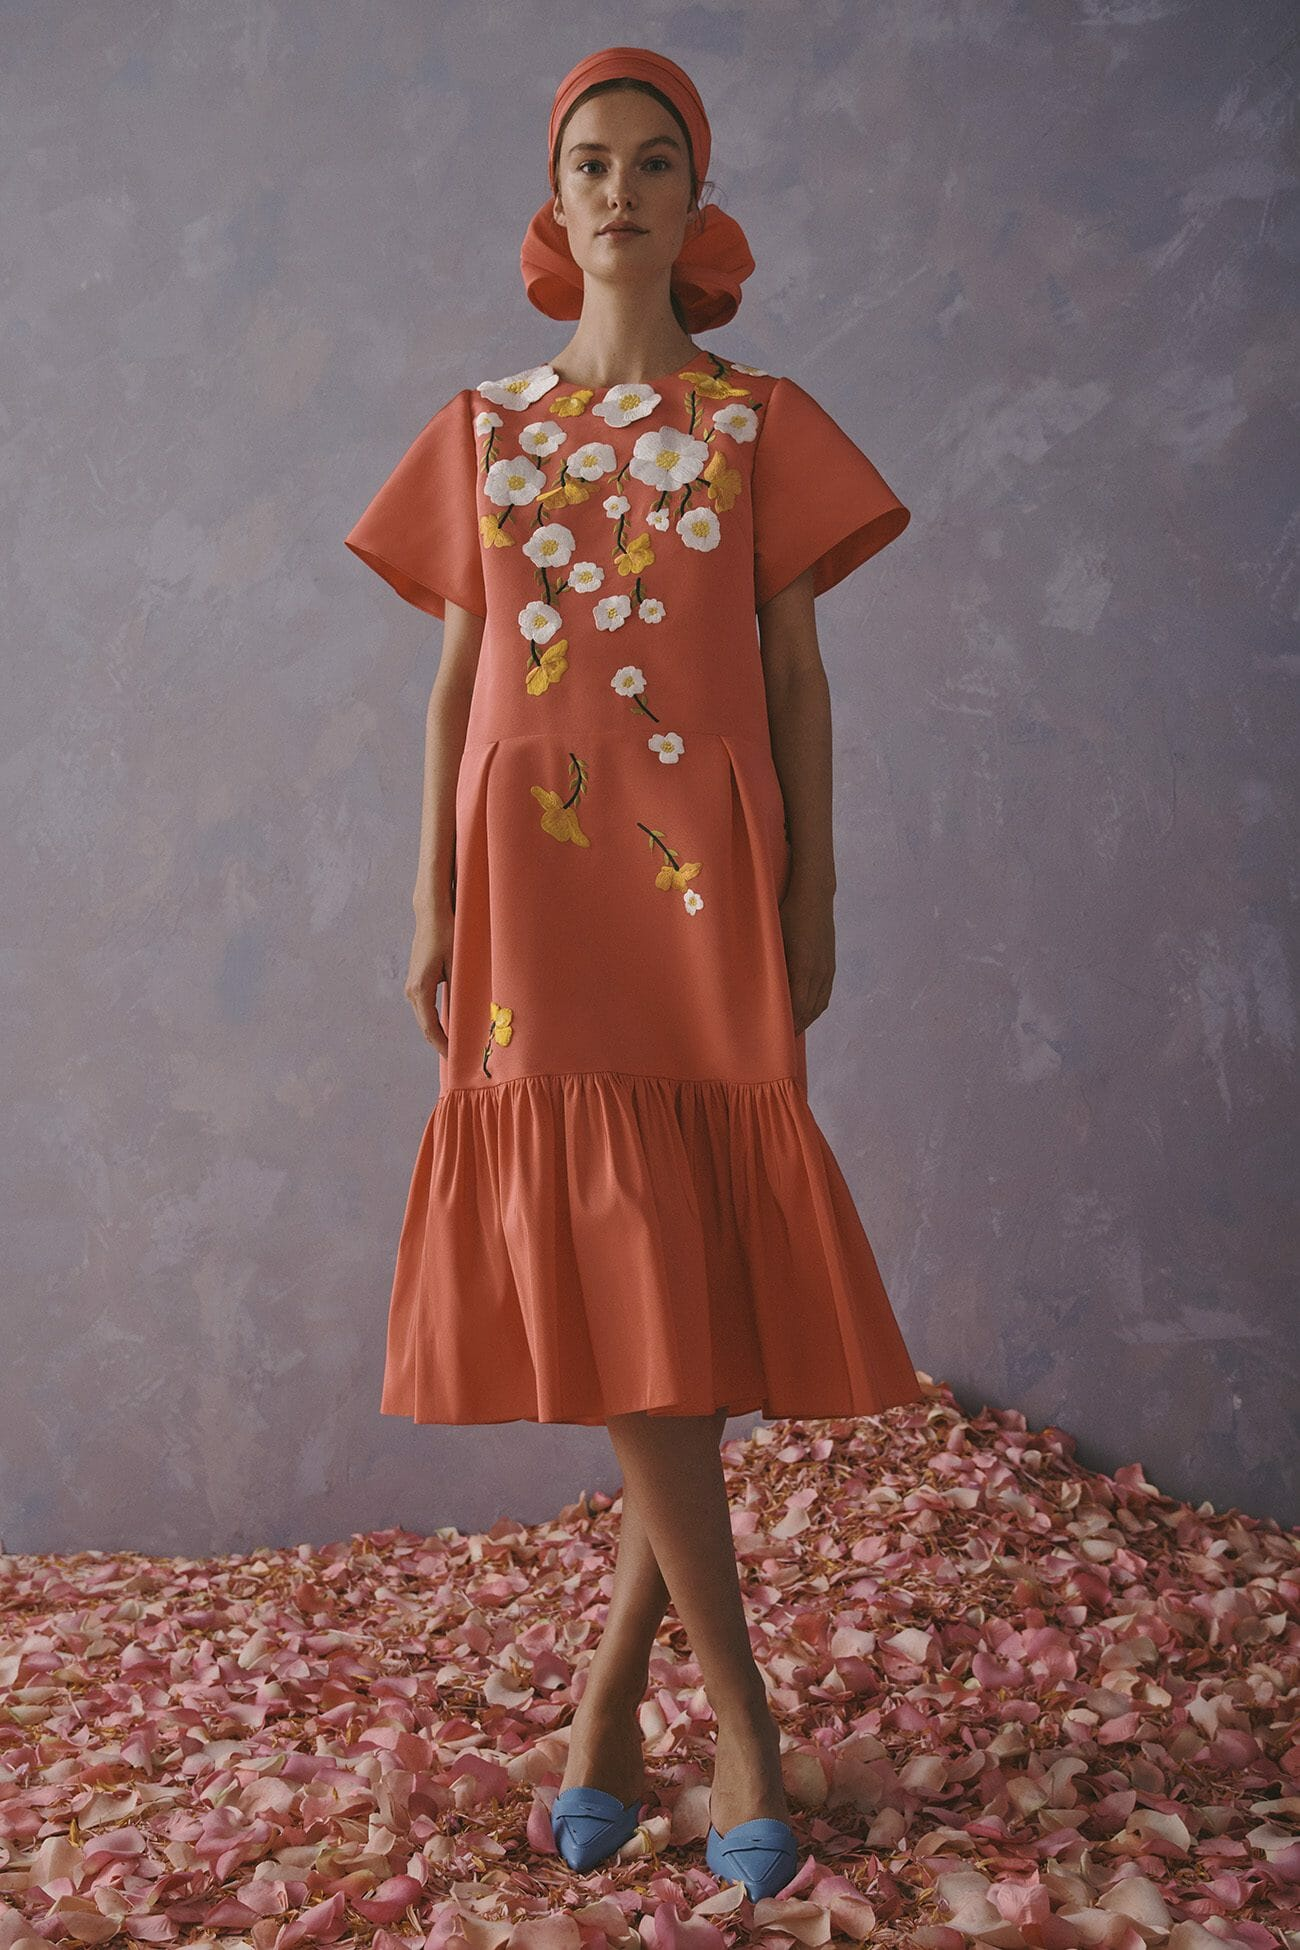 Carolina Herrera New York Resort 2020 Collection coral flower dress